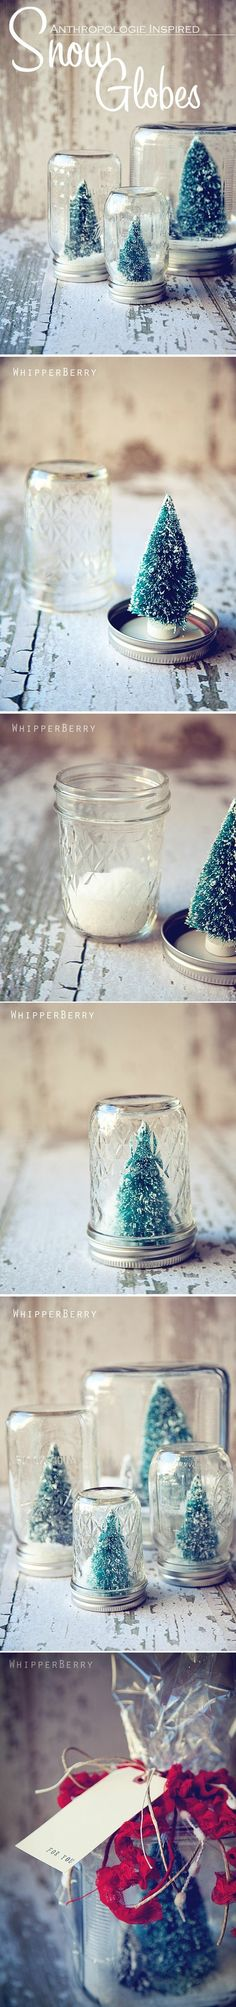 Snow Globes - cute and so easy